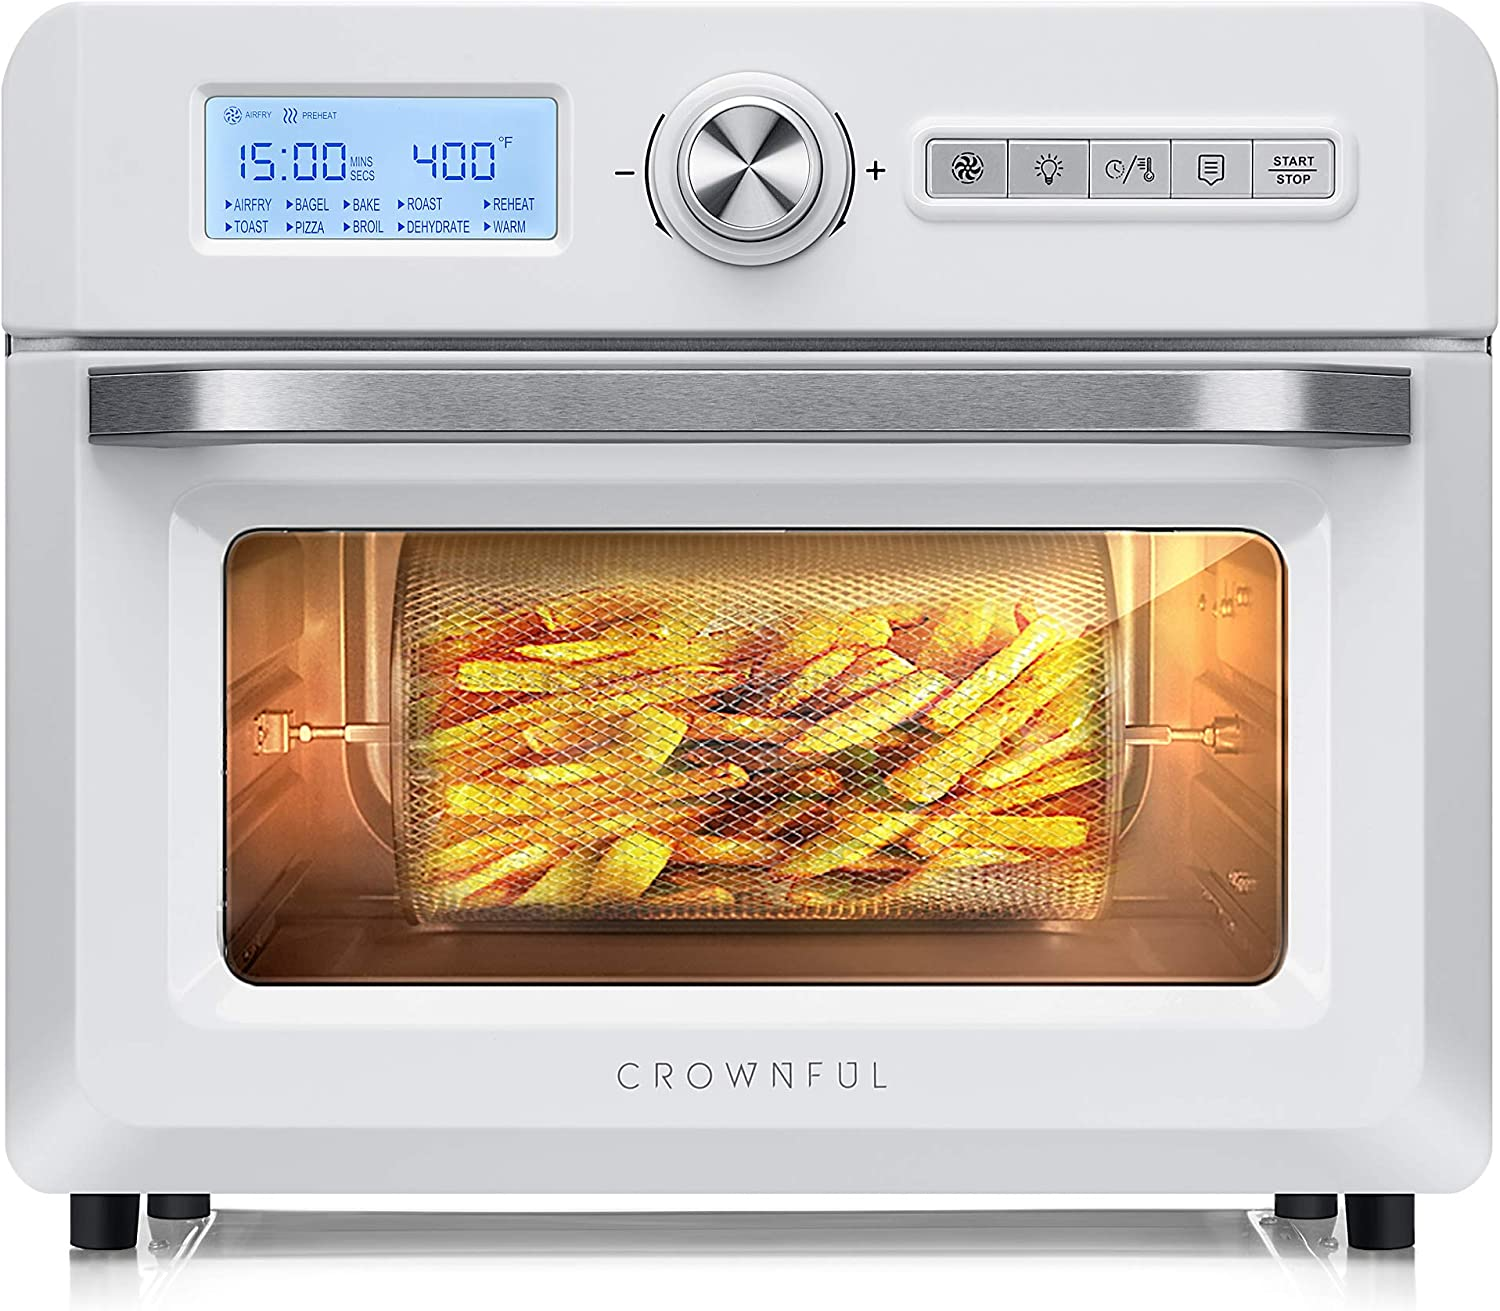 CROWNFUL 19 Quart Air Fryer Toaster Oven, Convection Roaster with Rotisserie & Dehydrator, 10-in-1 Countertop Oven, Original Recipe and 8 Accessories Included, UL Listed (White)